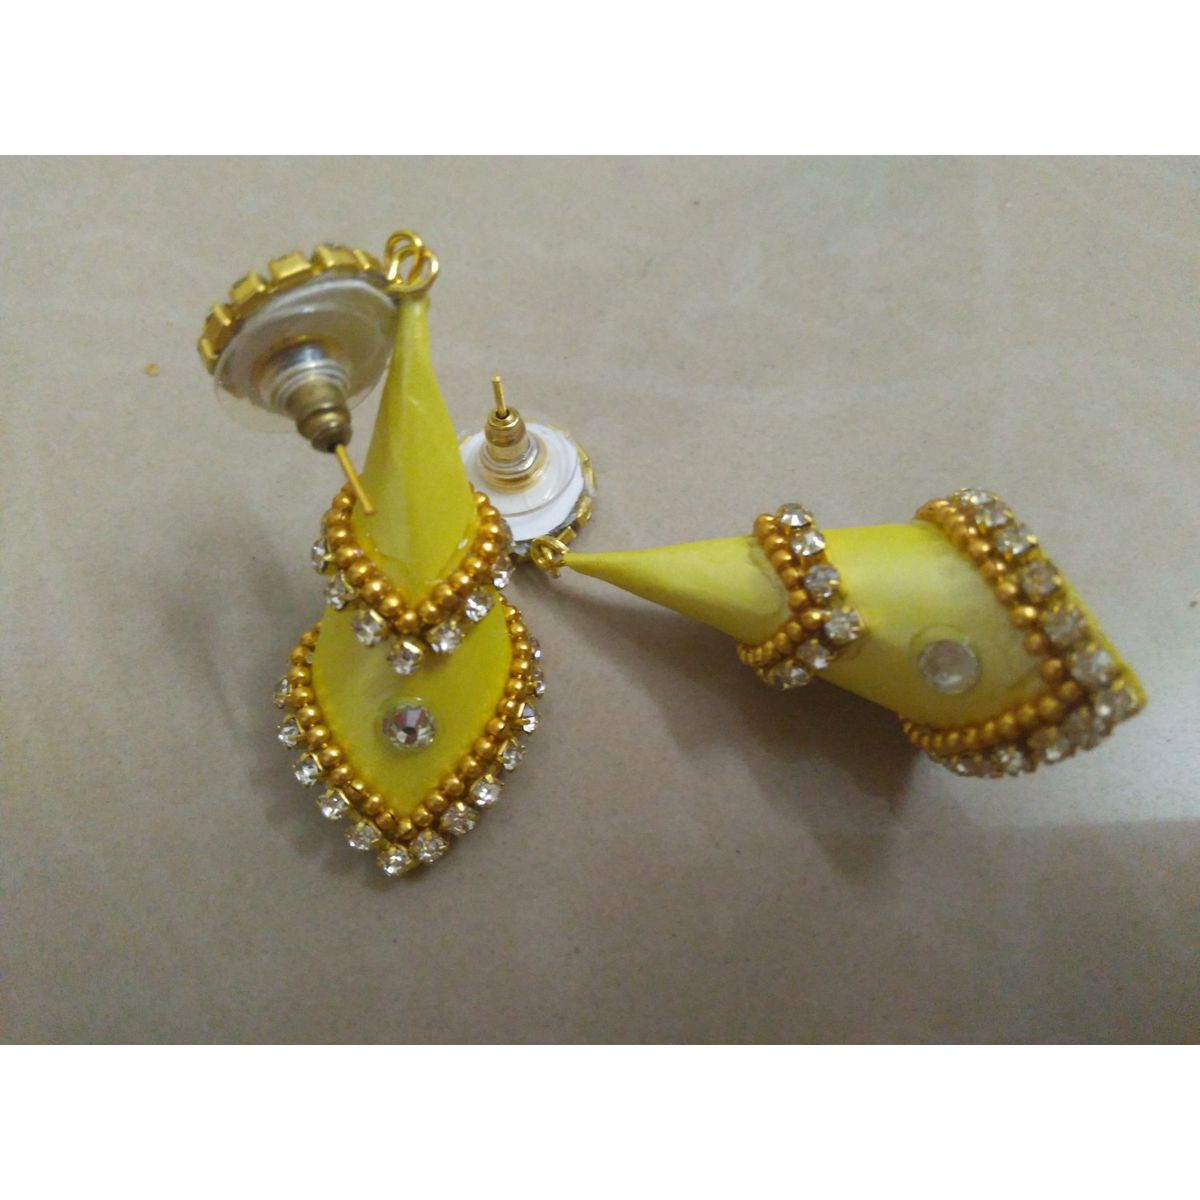 bali chand purchases wholesale earrings studded with stones very quality good pin fully gold for